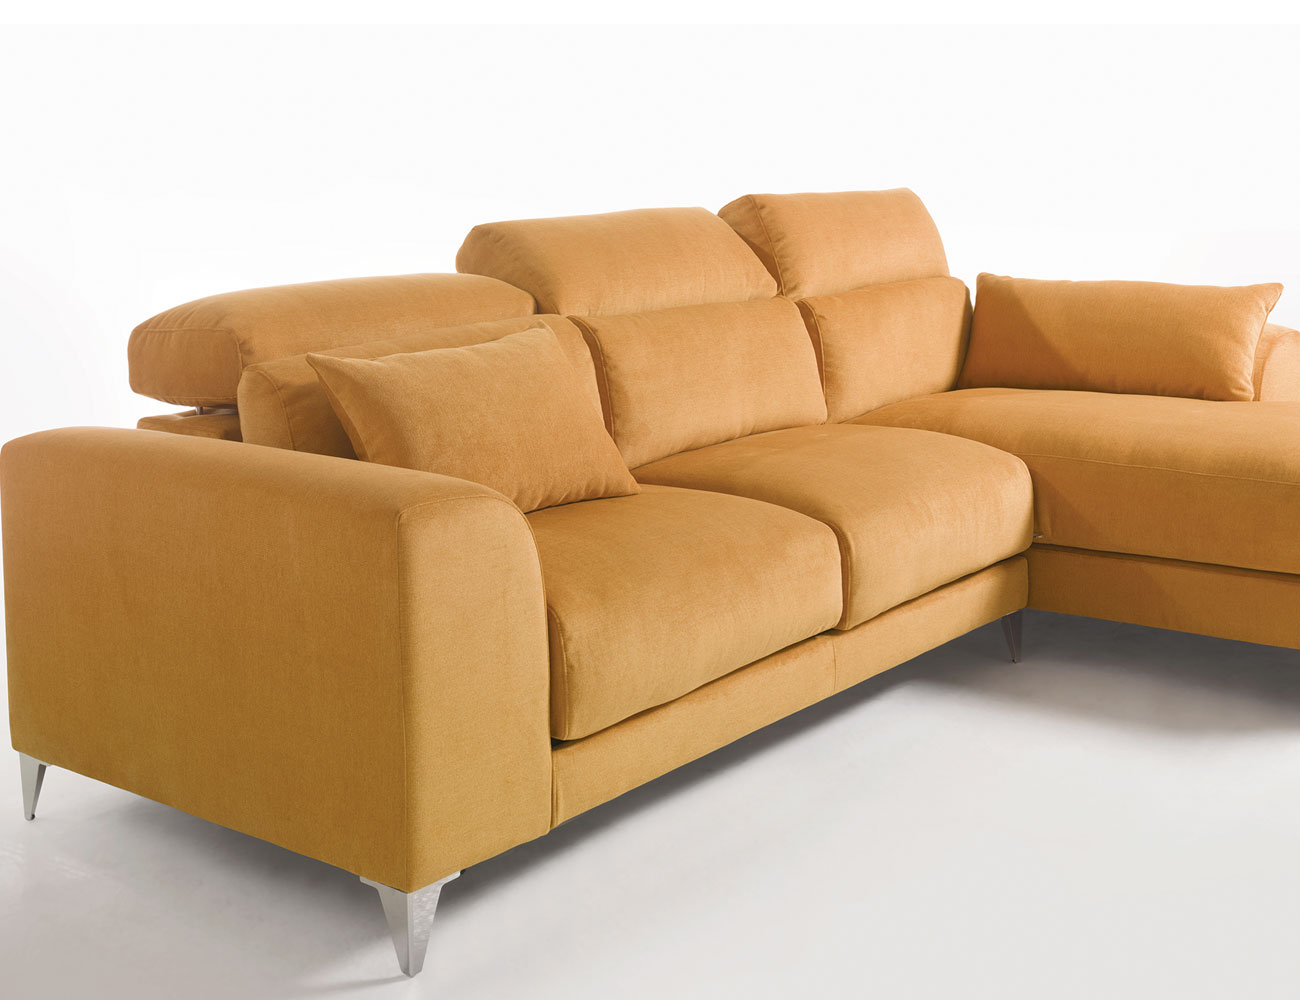 Sofa chaiselongue gran lujo decorativo patas altas amarillo 228